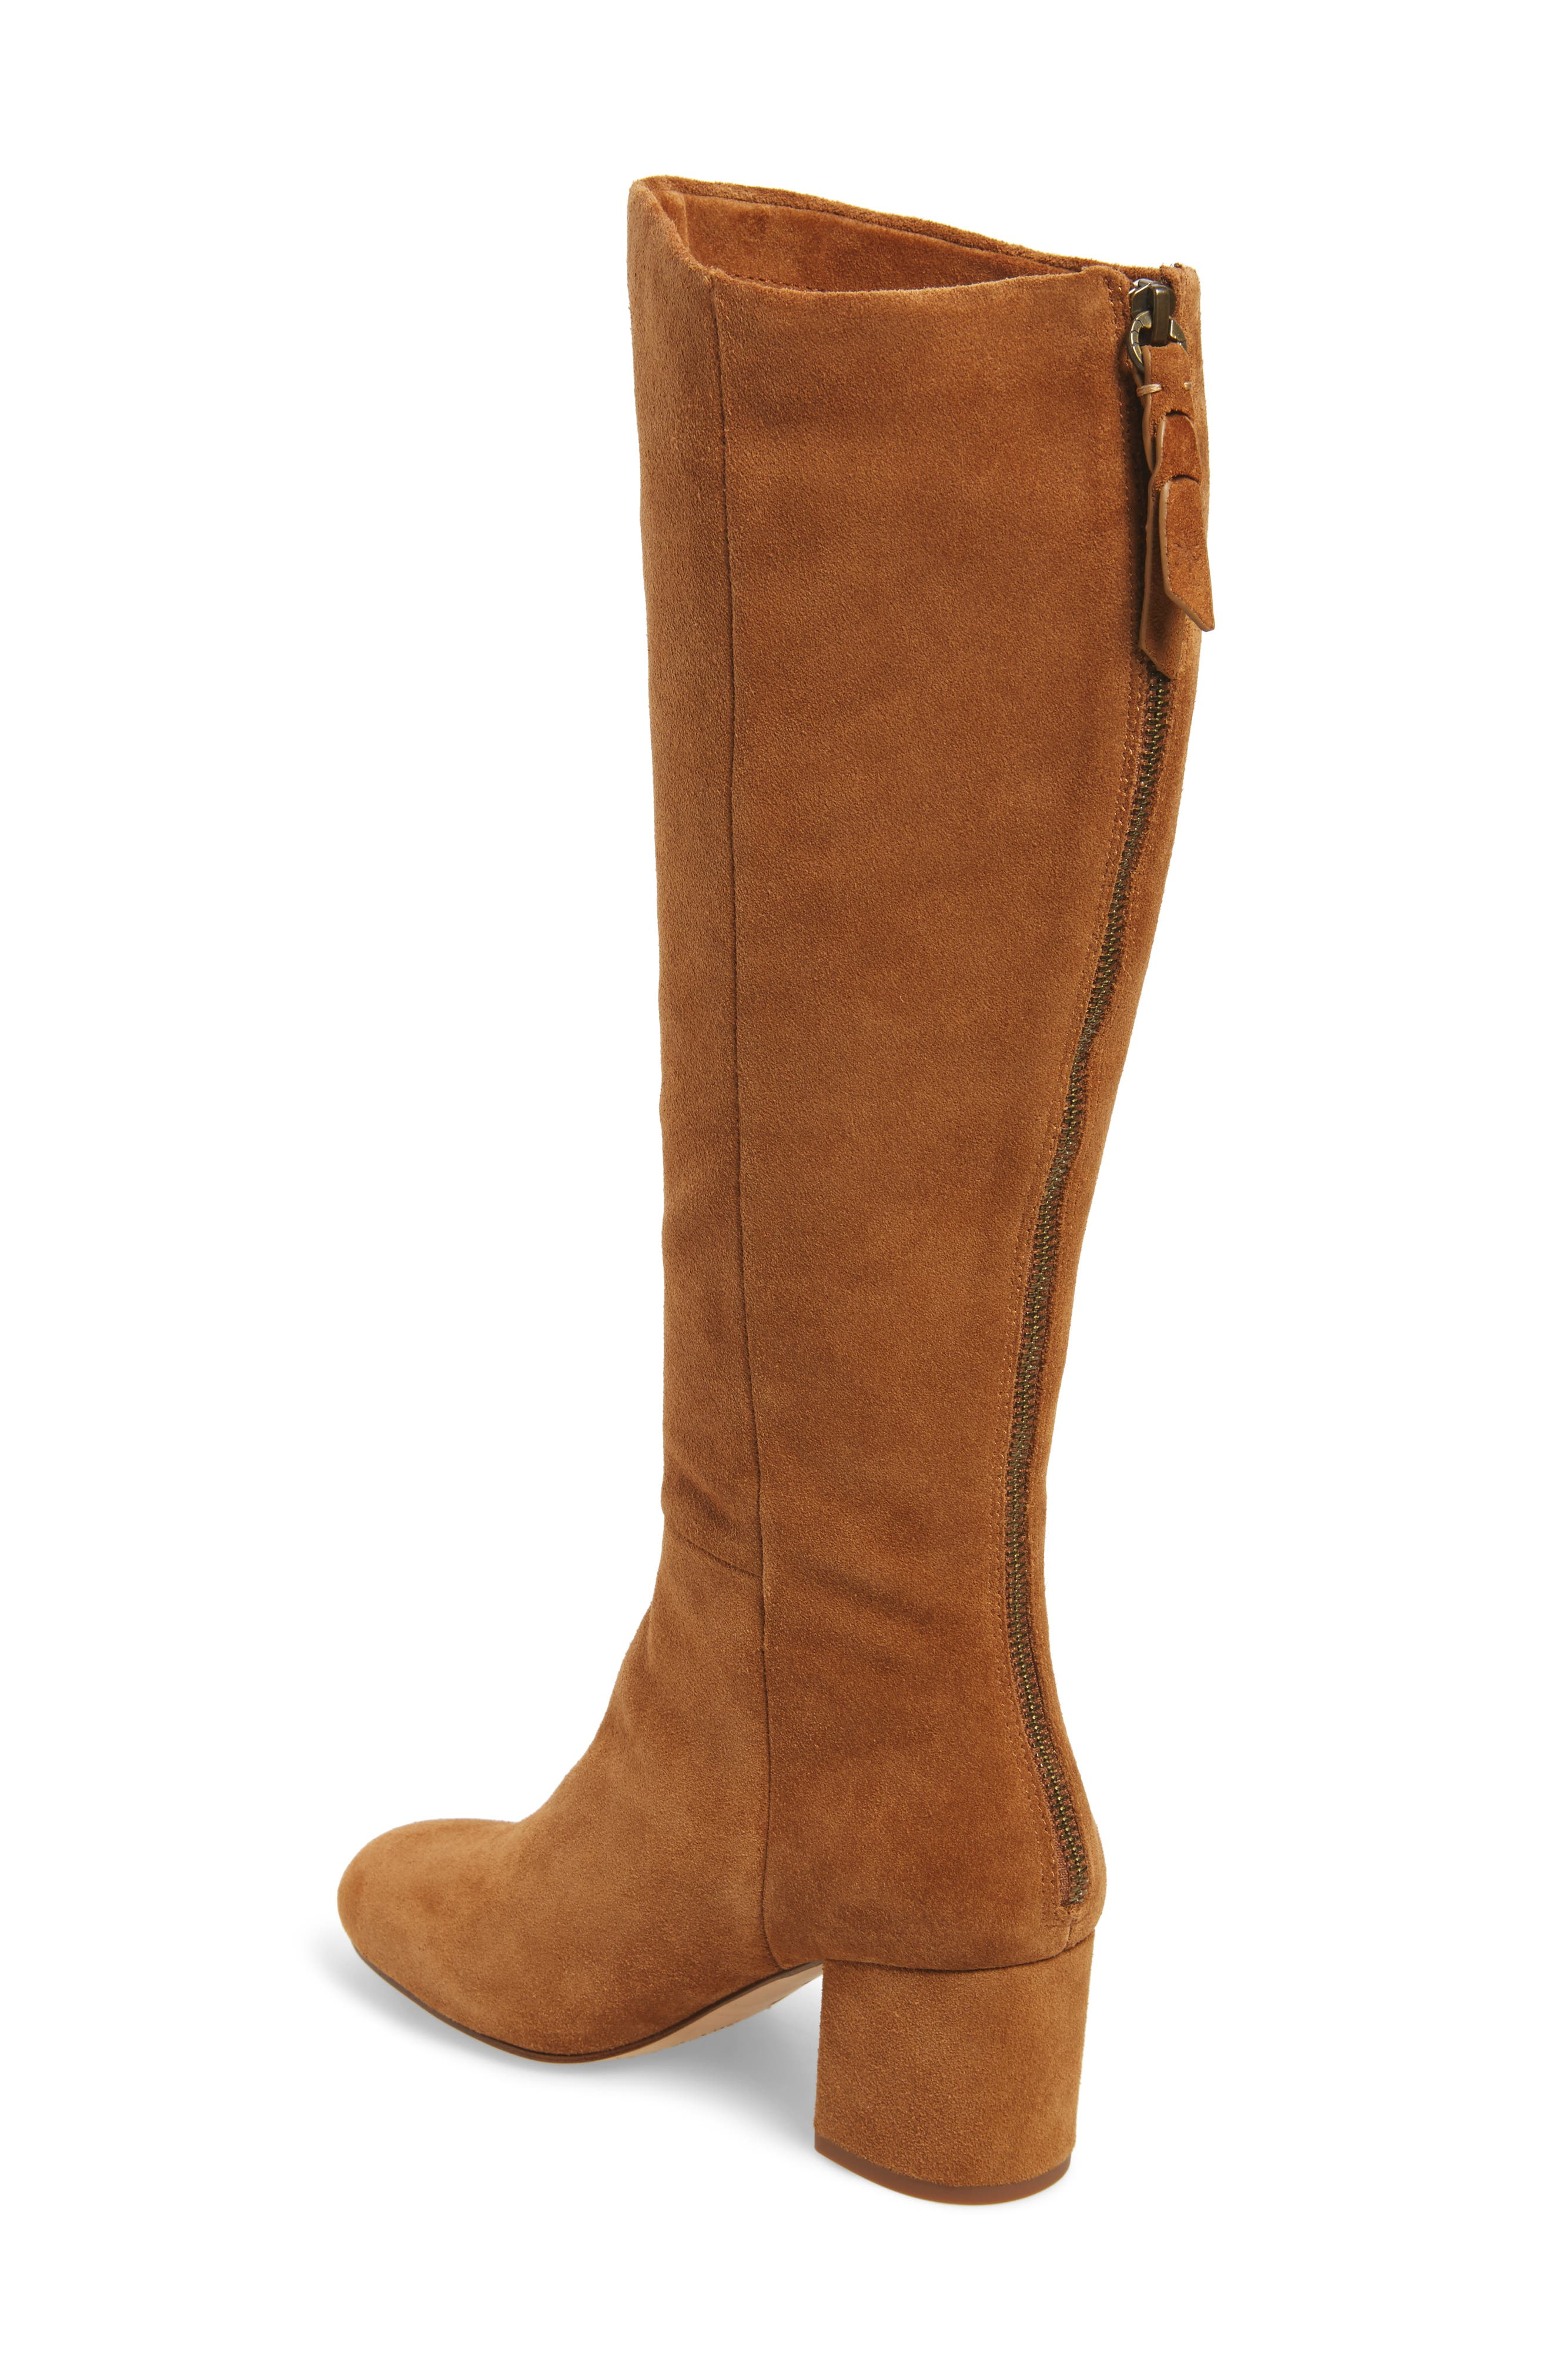 Danise Knee High Boot,                             Alternate thumbnail 2, color,                             Chestnut Suede